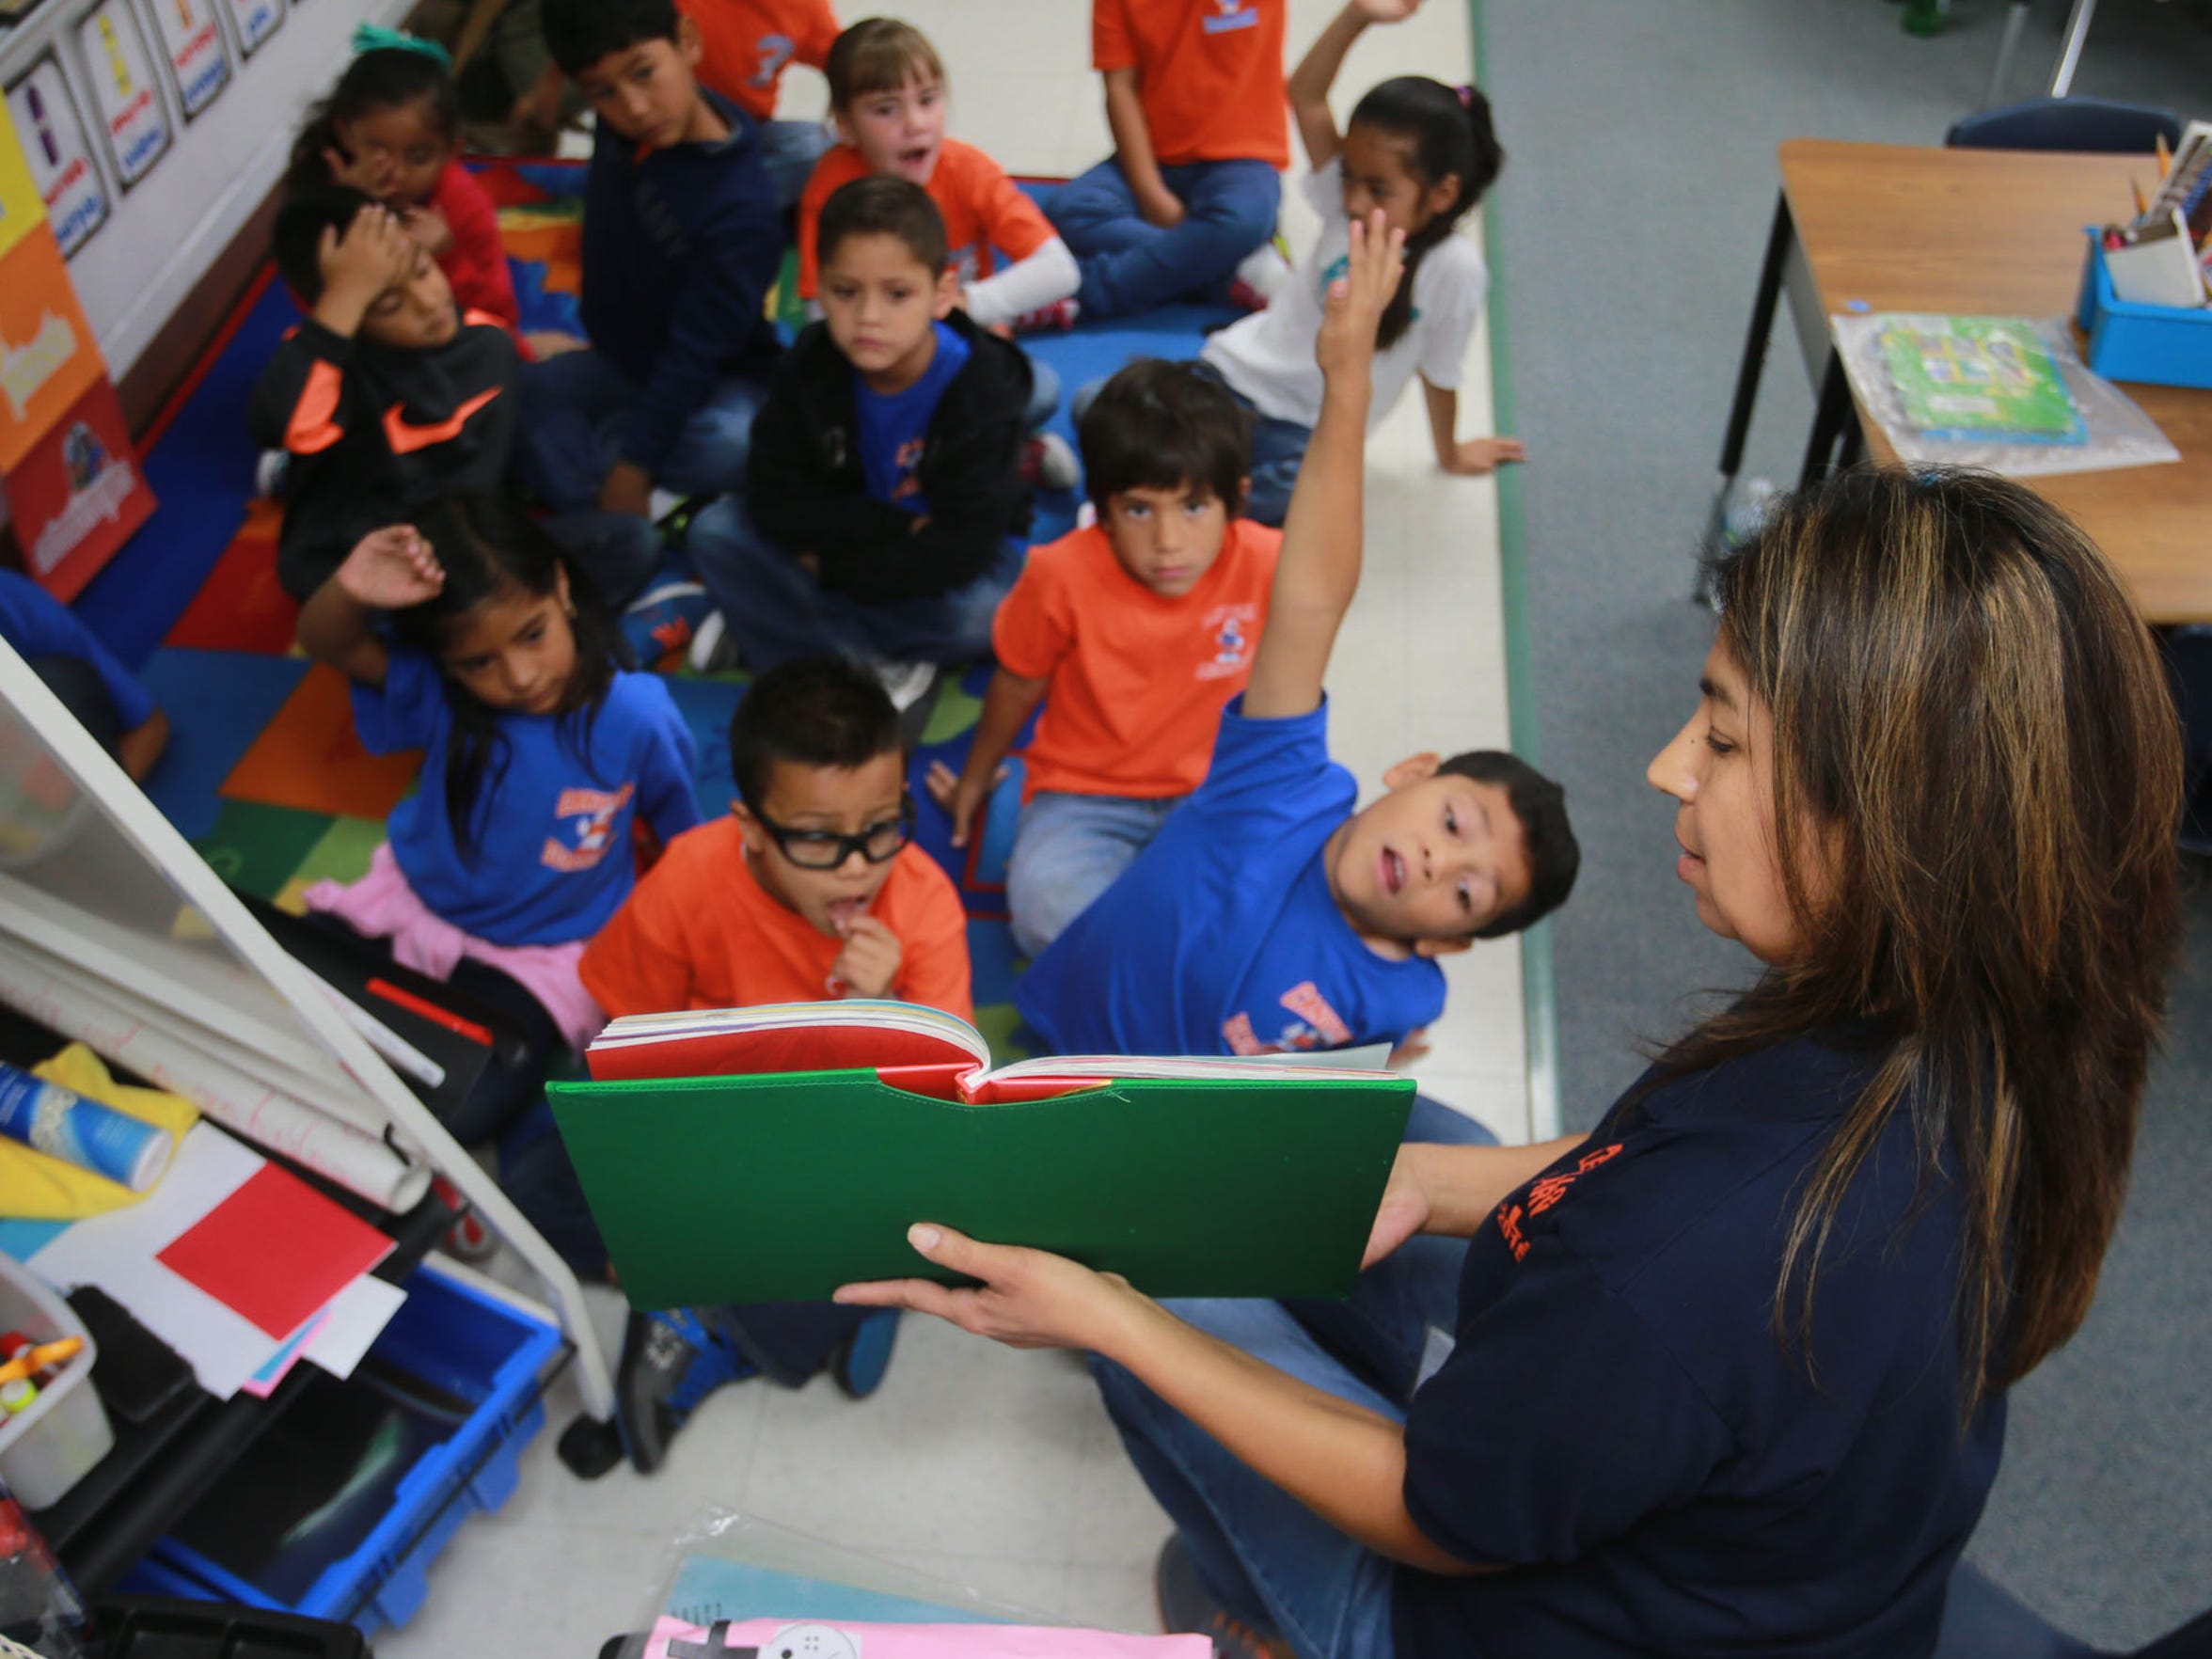 Students read a book at Canutillo Elementary School in this undated file photo. Teachers and employees in the Canutillo ISD will receive 2 percent pay increase in the coming school year.